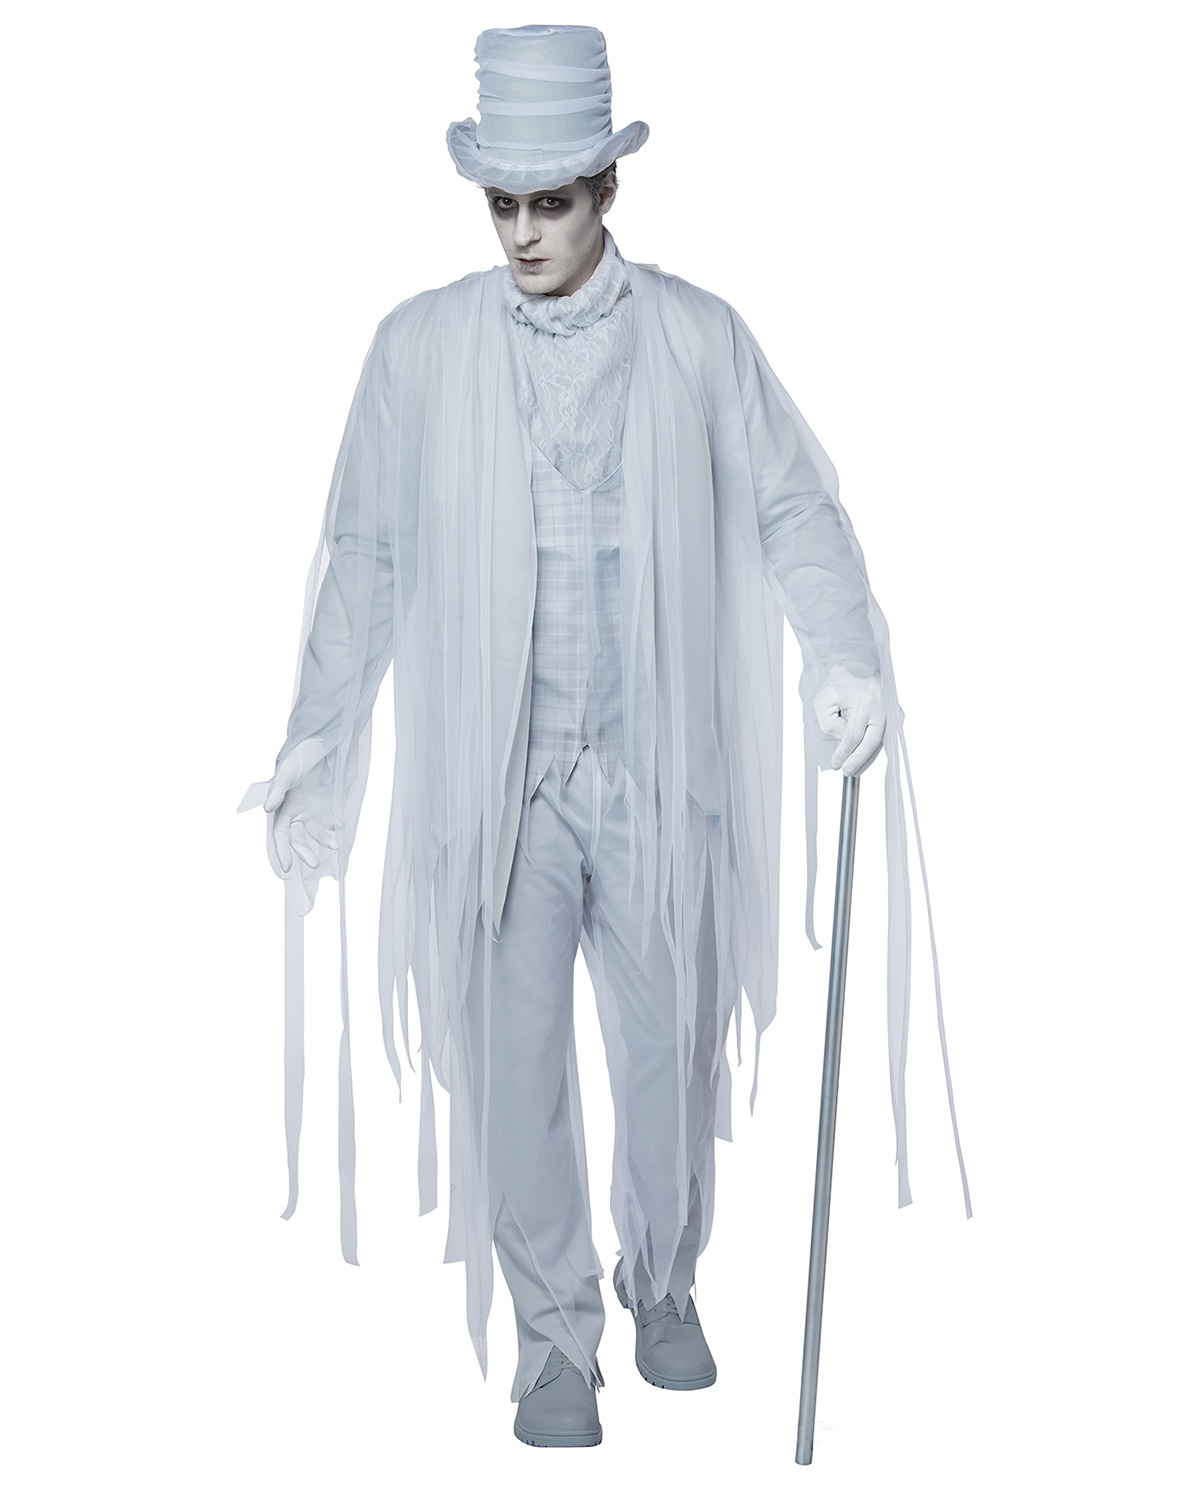 'California Costumes 01475 Haunting Gentleman Adult Man Costume'